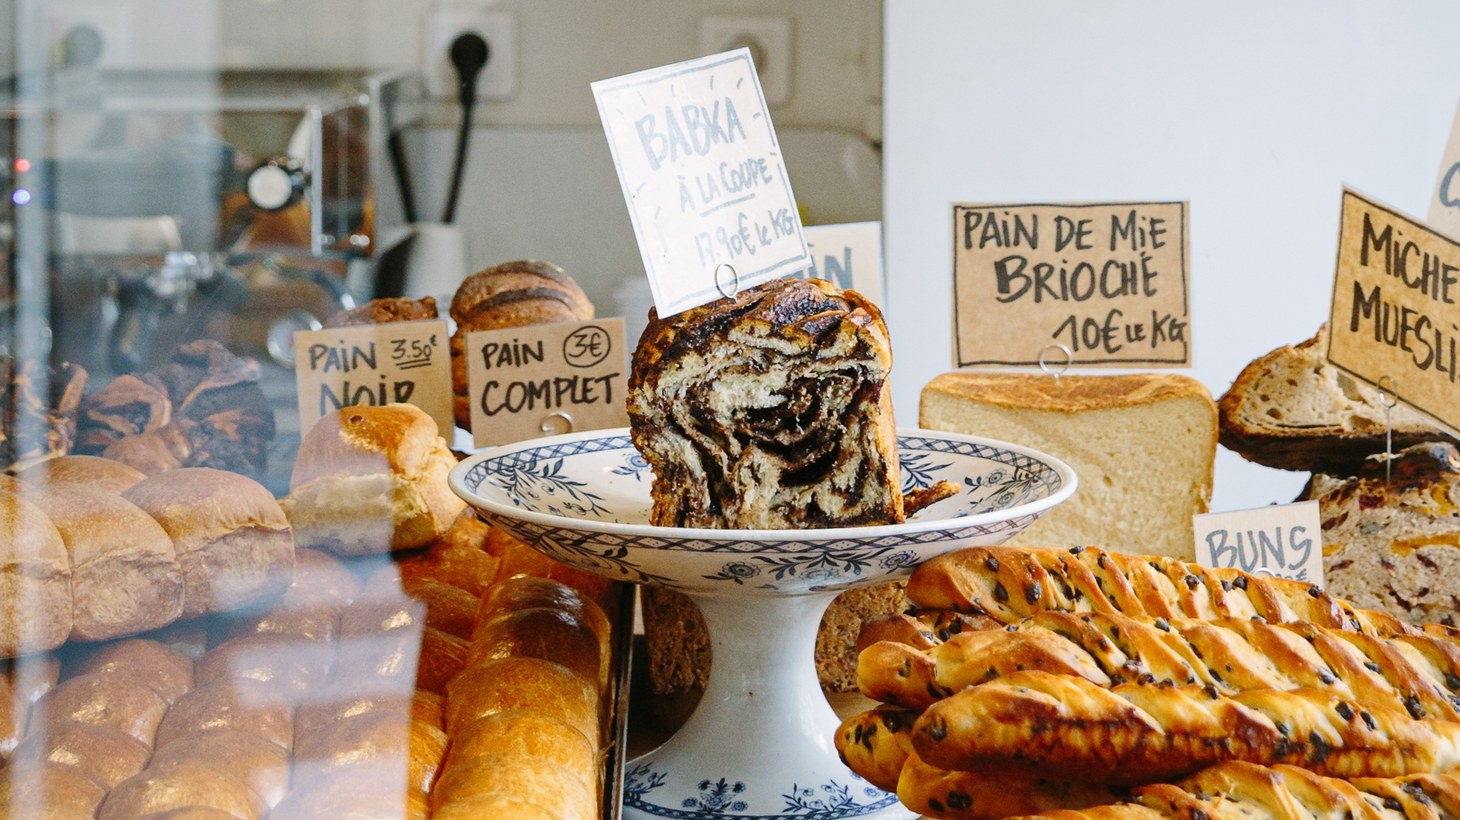 """Maimiche is a female-owned bakery in Paris that opened a second location last year. Lindsey Traumuta writes about the rise of female-owned businesses and the role of women in France in her book, """"The New Parisienne."""""""